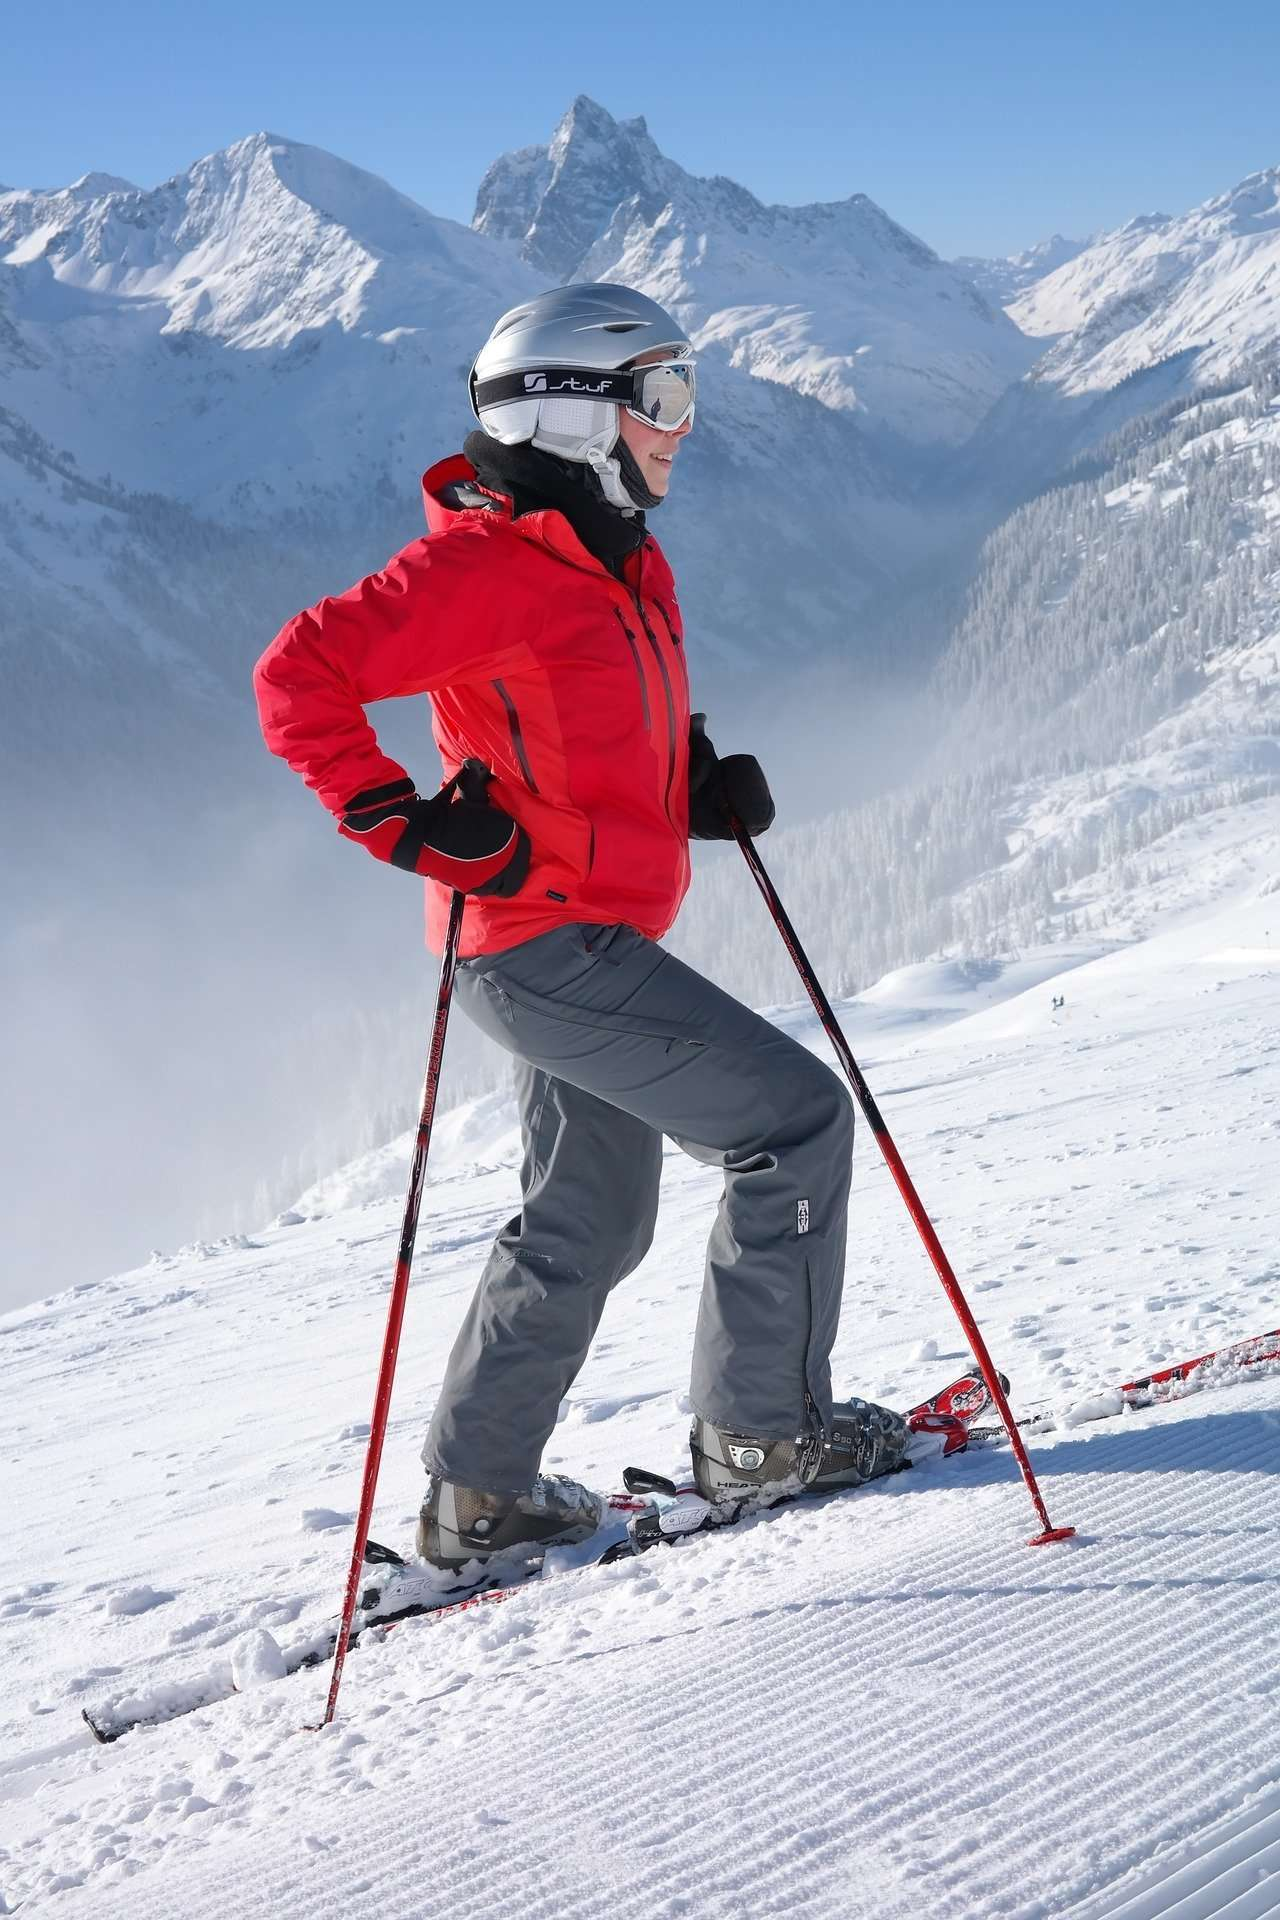 Skier in red jacket posing with ski poles